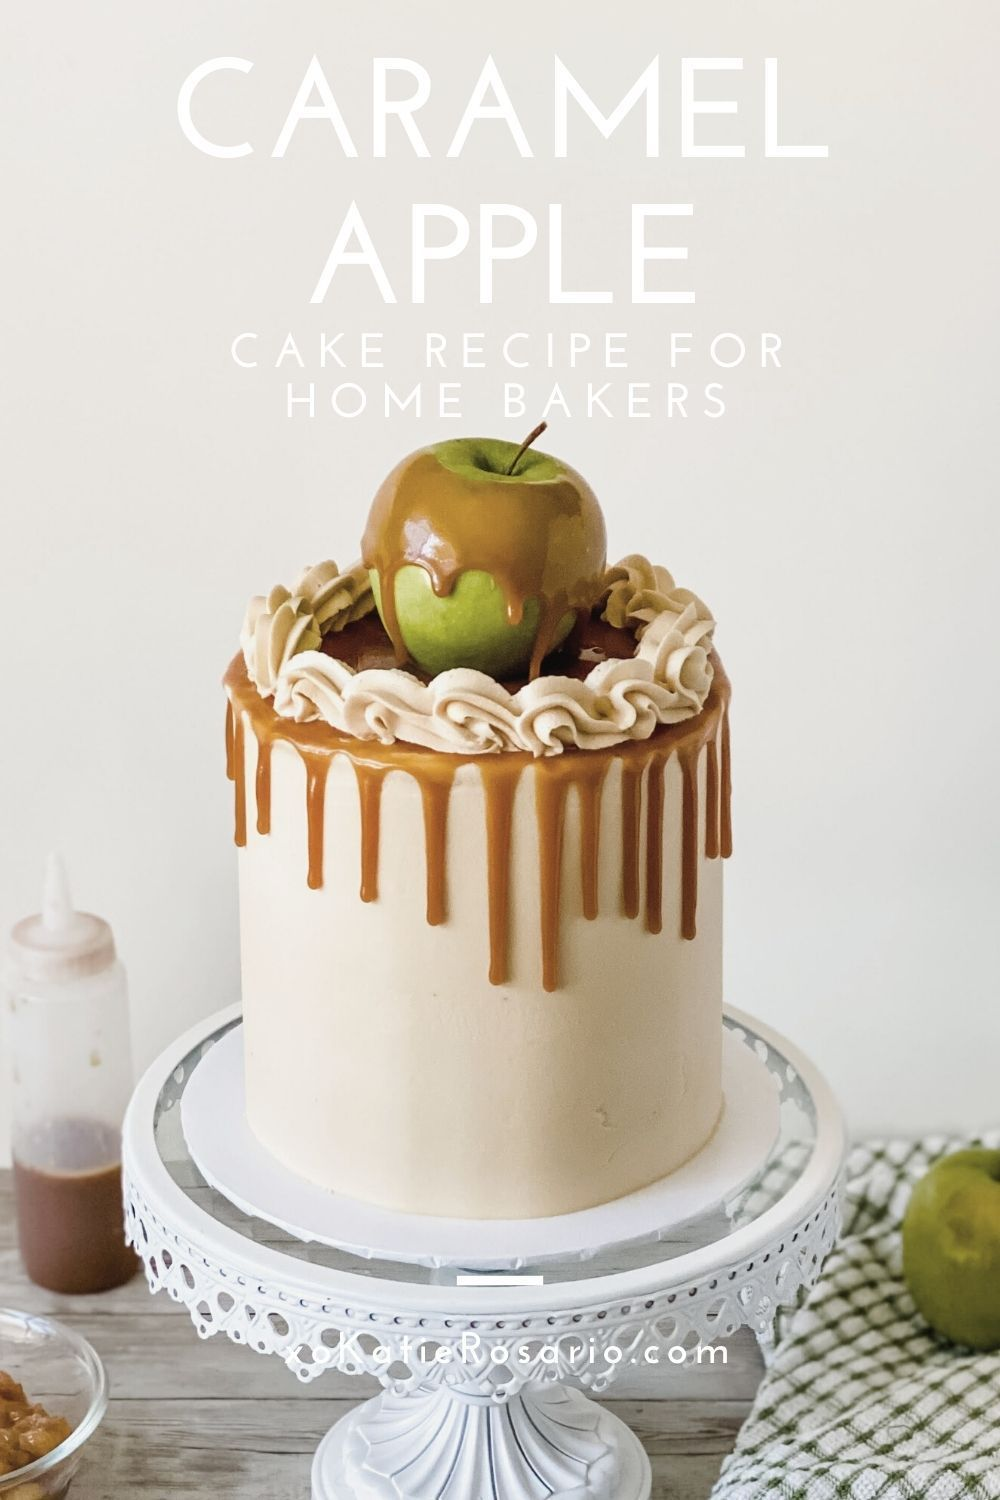 648054d06ea1c50720912367aac904c3 - Better Homes And Gardens Apple Spice Cake